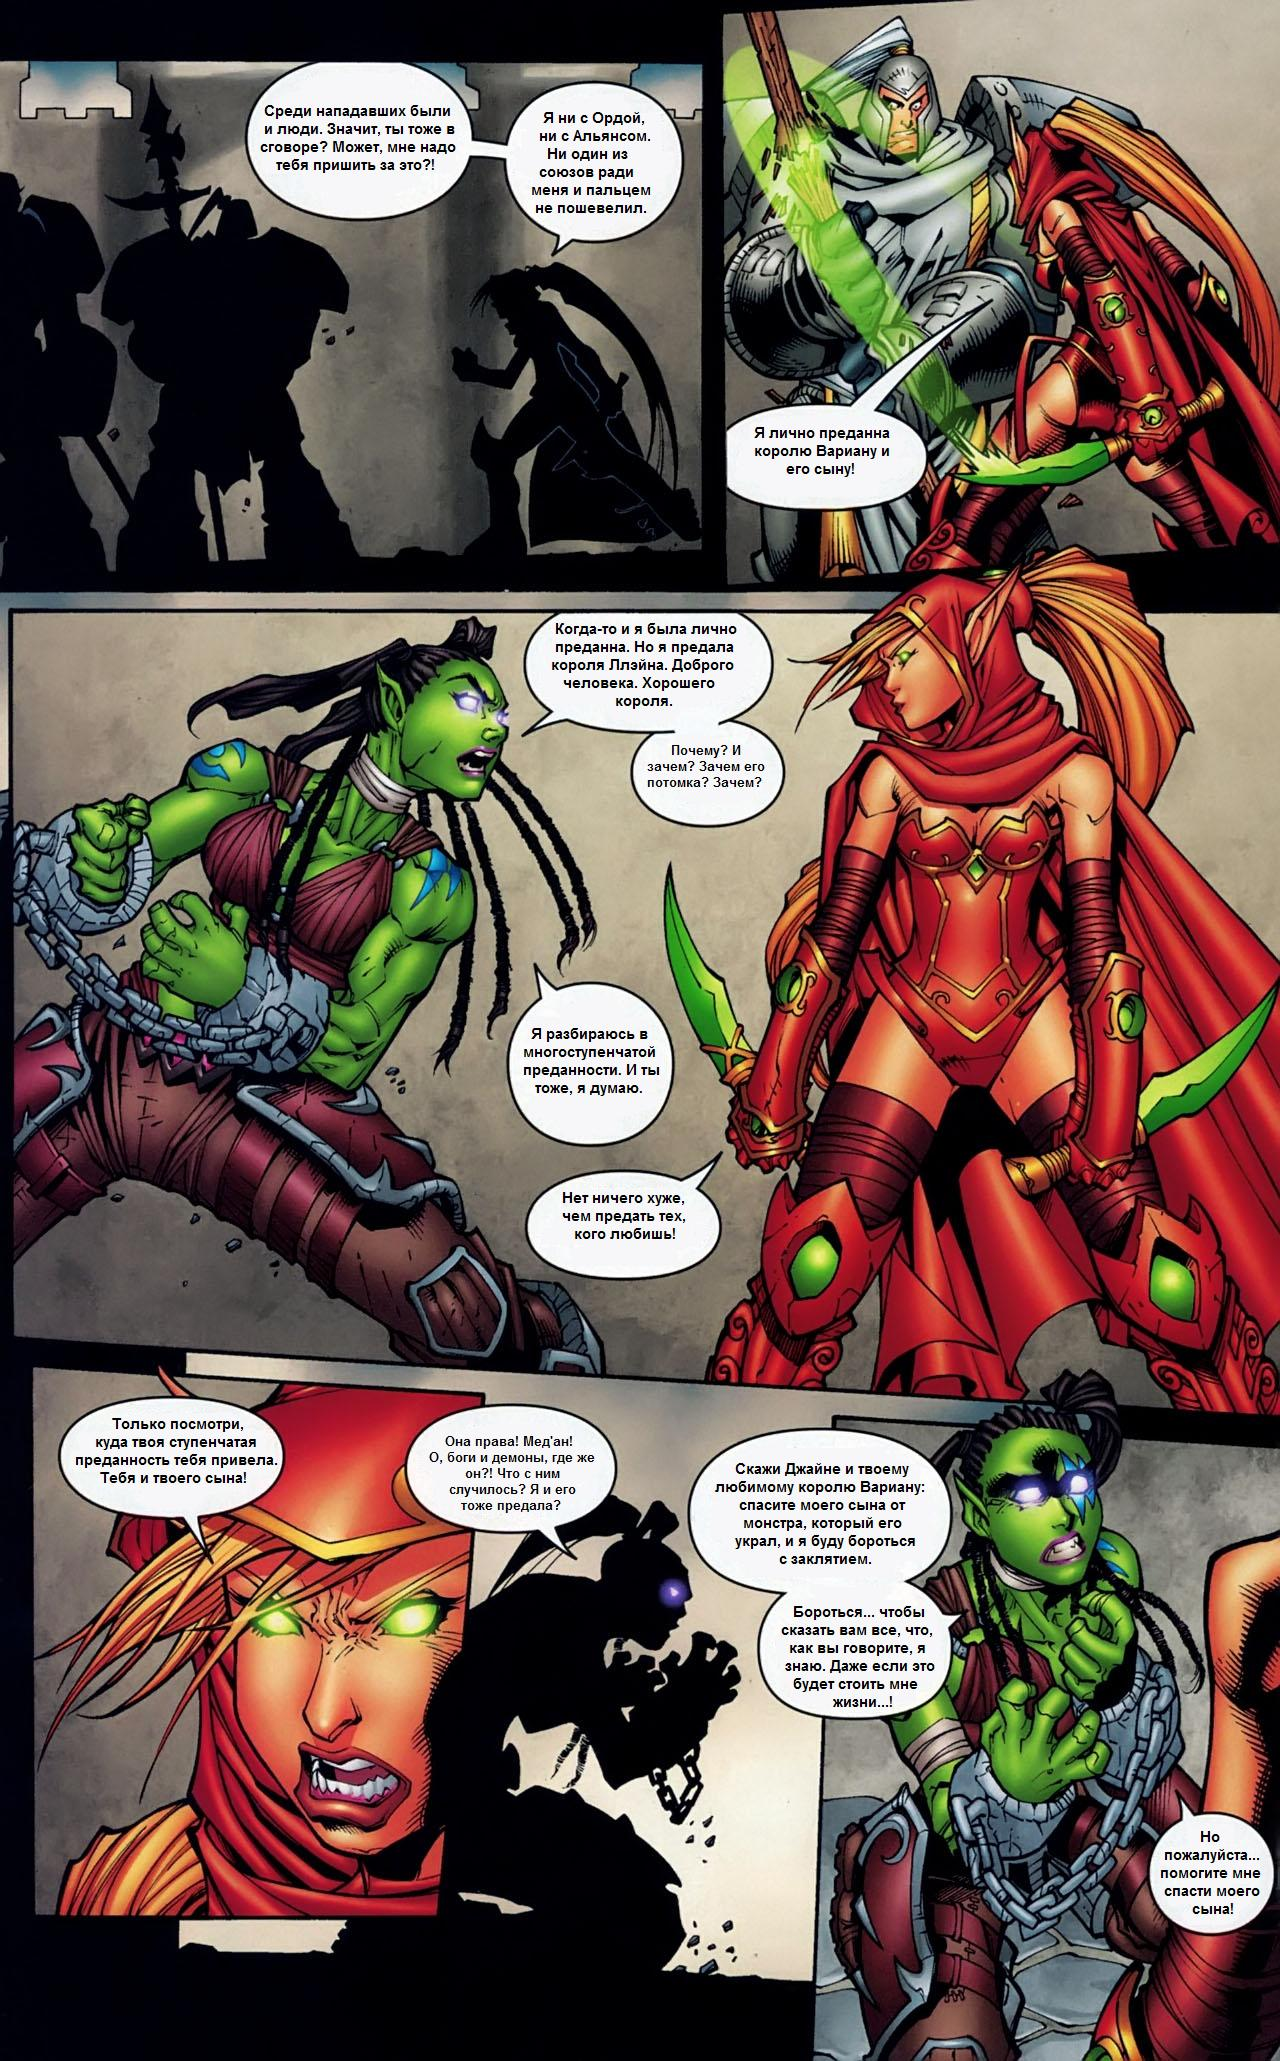 World of warcraft 18 erotic comic